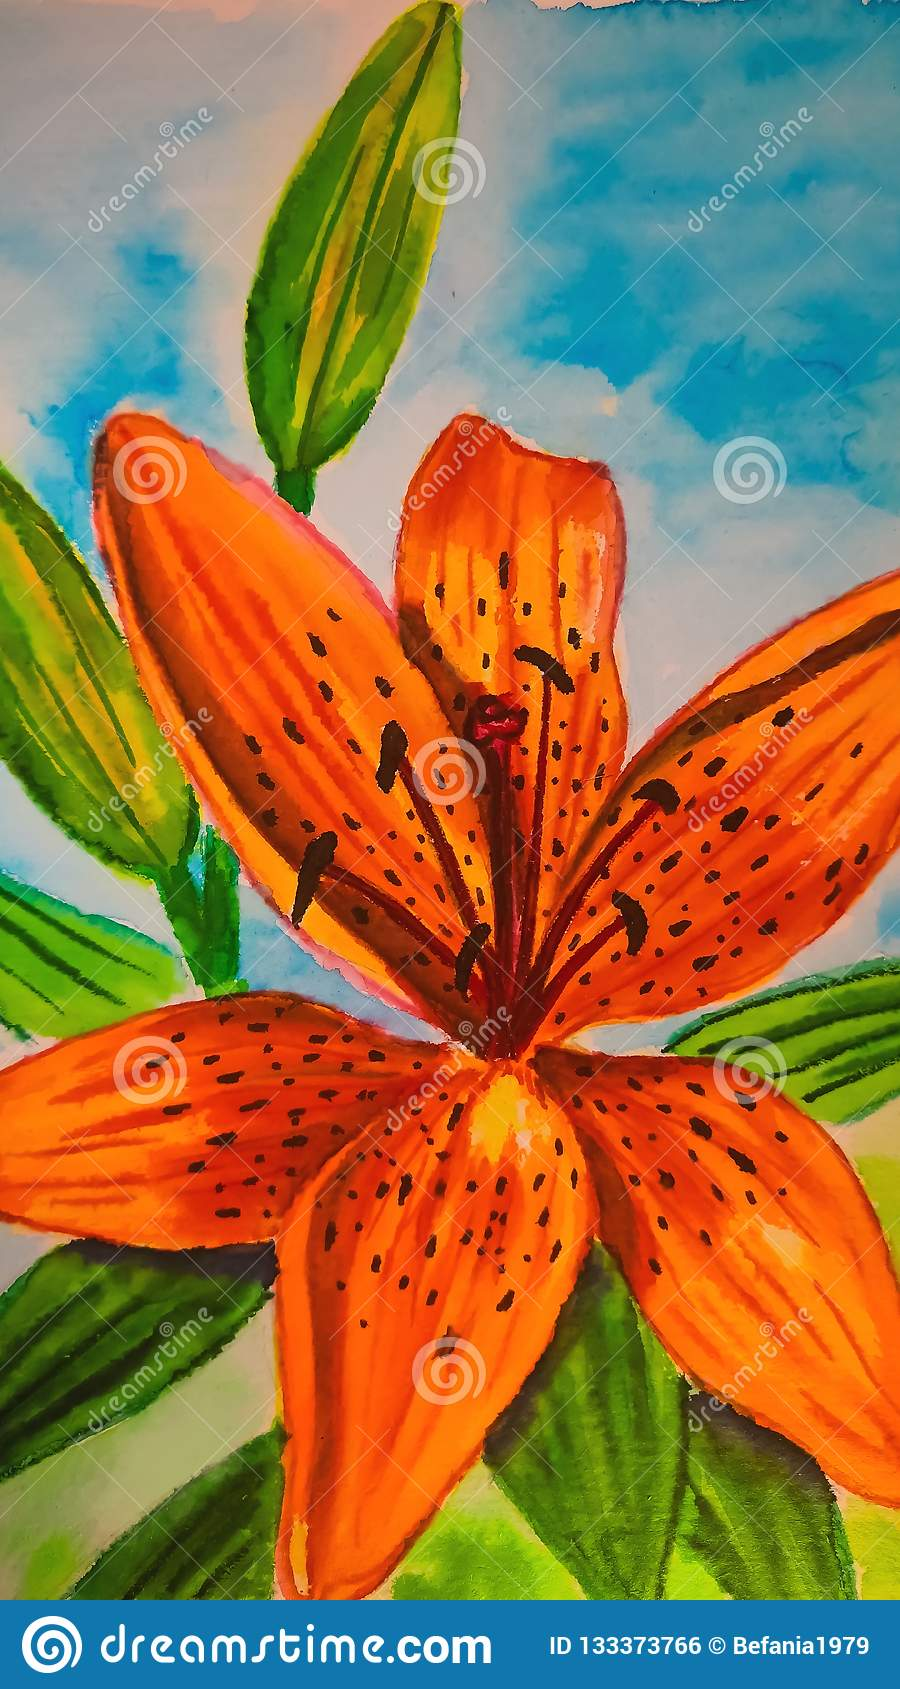 Watercolor Tiger Lily on the skyblue background